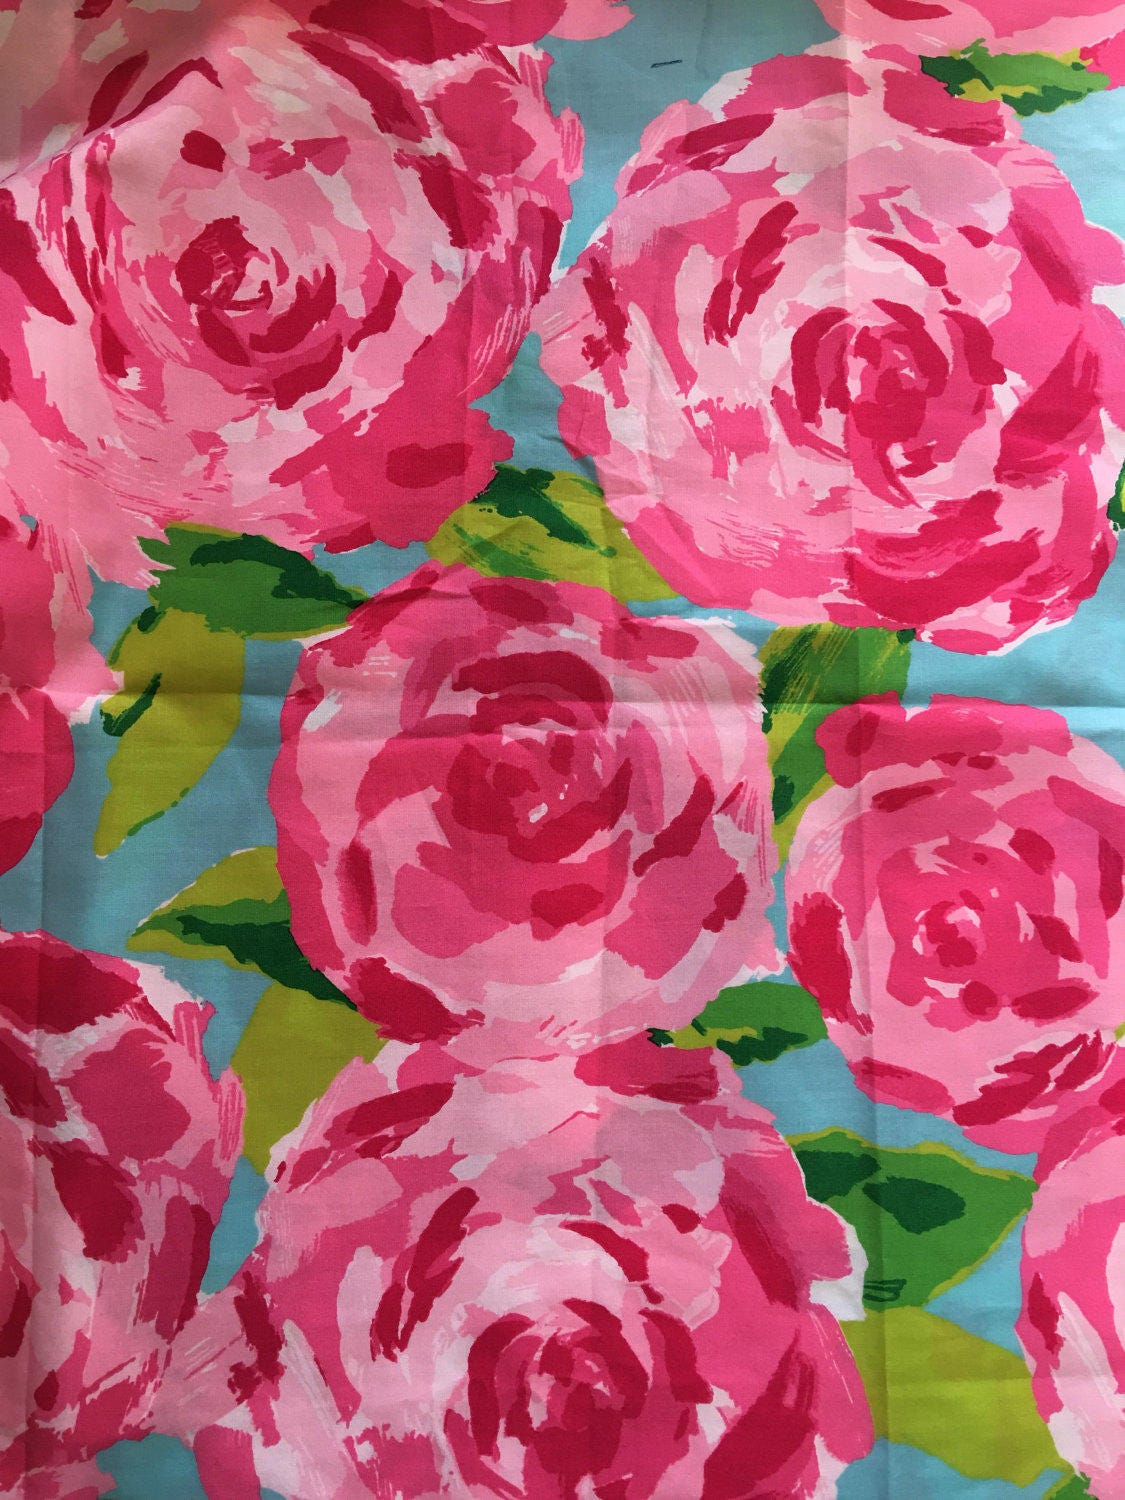 Lilly Pulitzer Fabric 3 Patches Of Lilly Pulitzer Fabric Hotty Pink First Impression